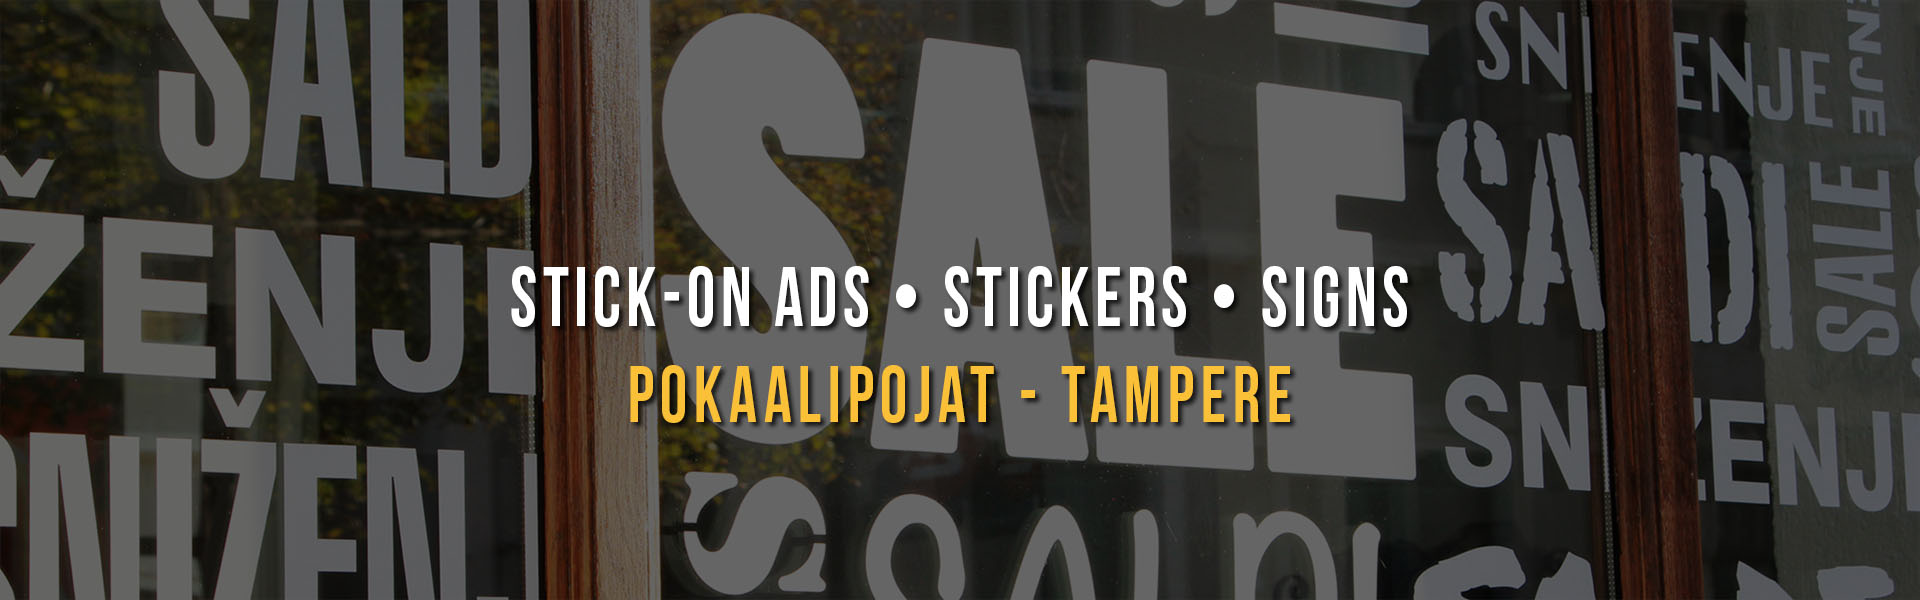 Stick-on ads and stickers • Ad signs